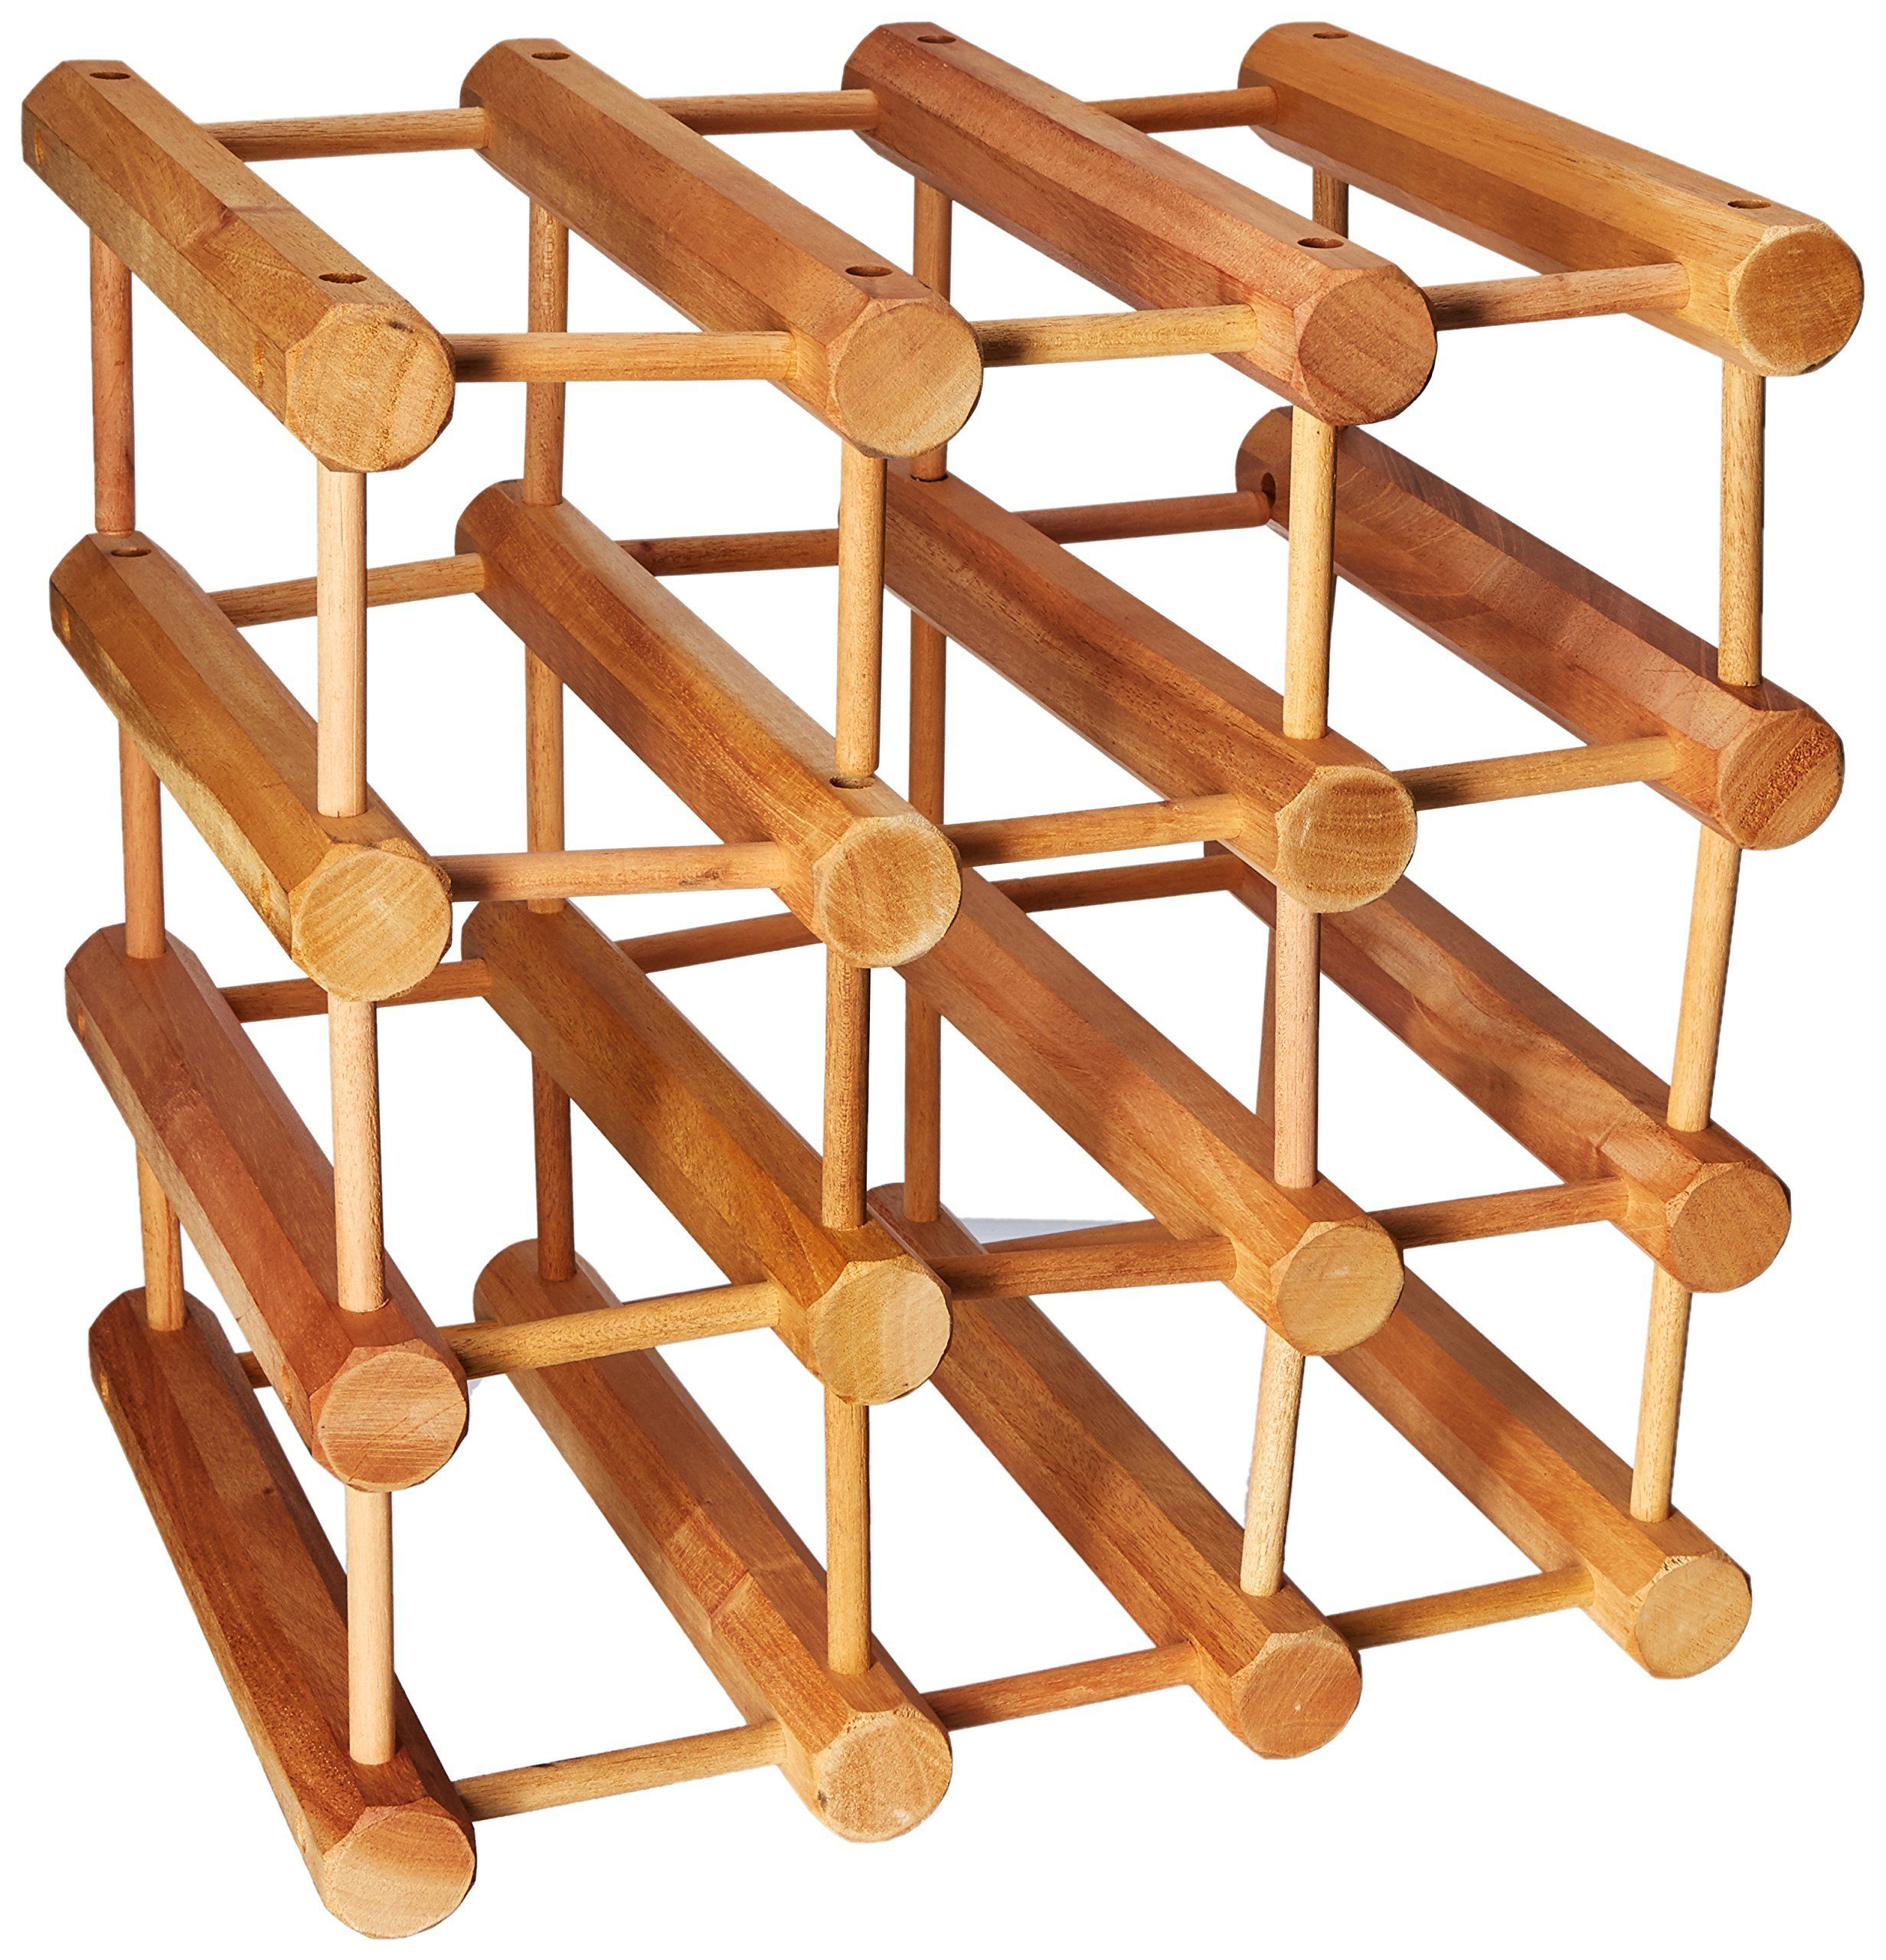 Wine Enthusiast Modular 12 Bottle Wine Rack Natural To View Further For This Item Visit The Image Link This I In 2020 Wine Rack Wine Rack Storage Wine Enthusiast